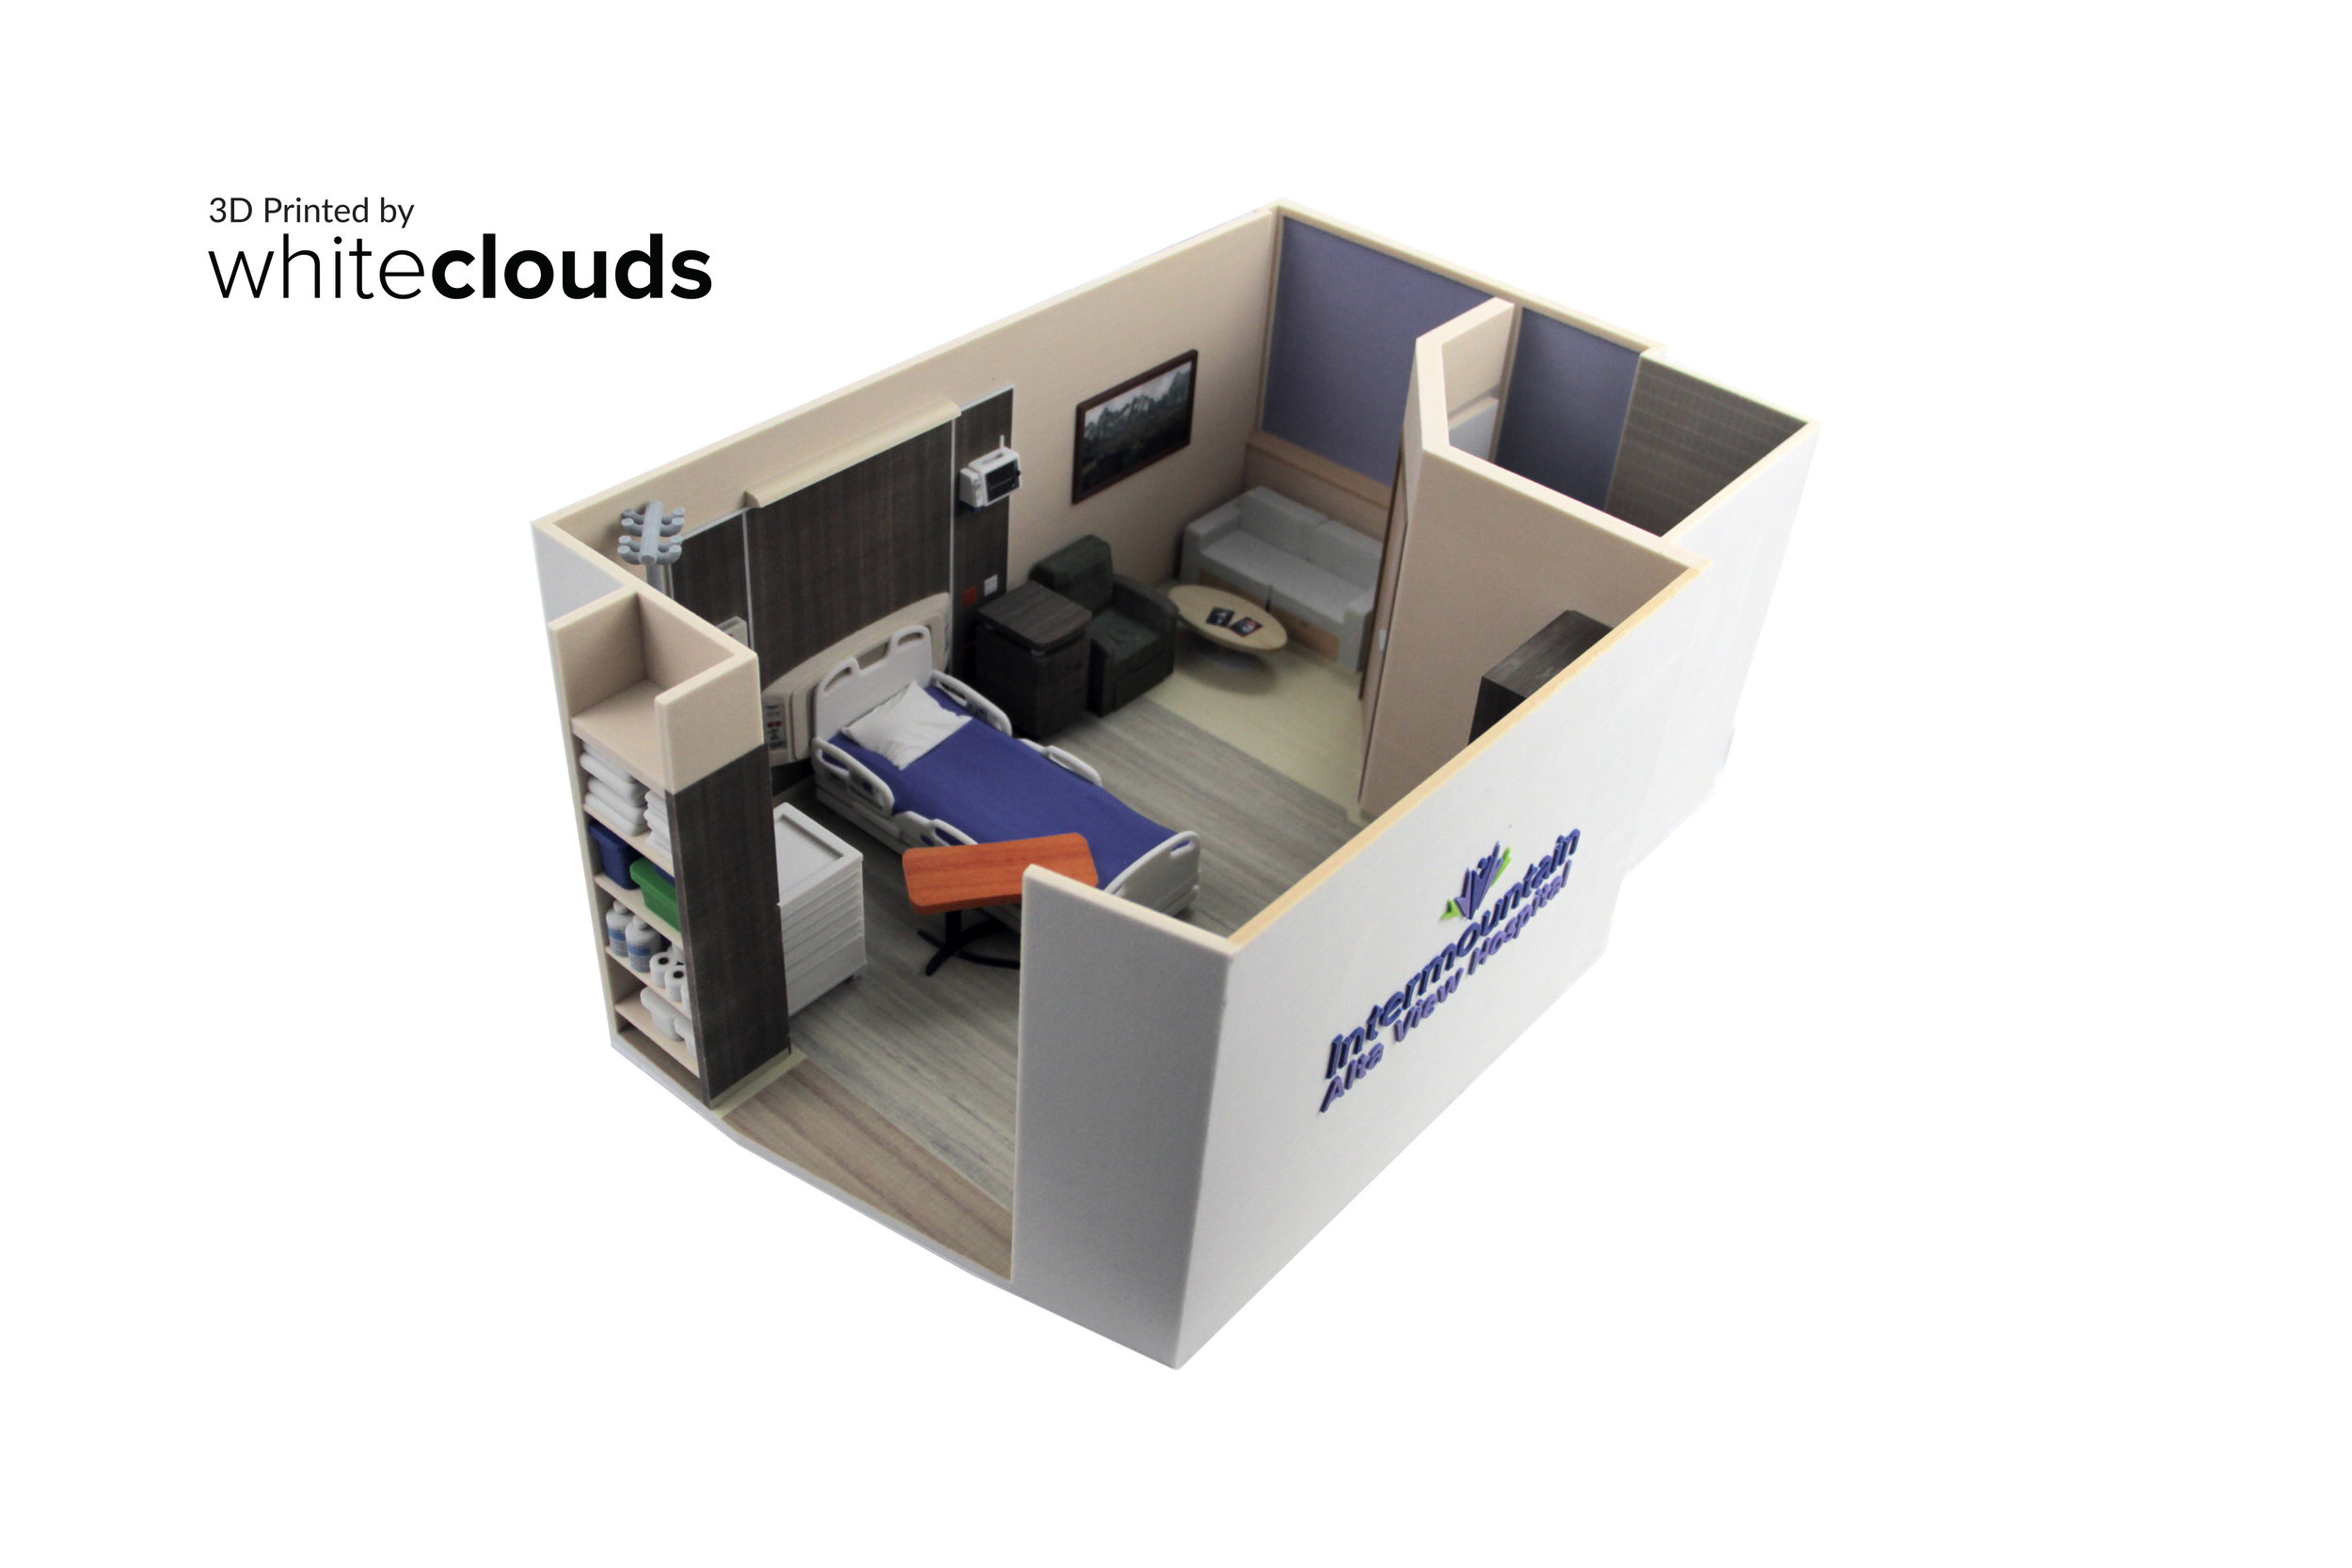 3D-Printed-WhiteClouds-Patient-Room-Architectural-IHC-Interior-Clean-1.jpg